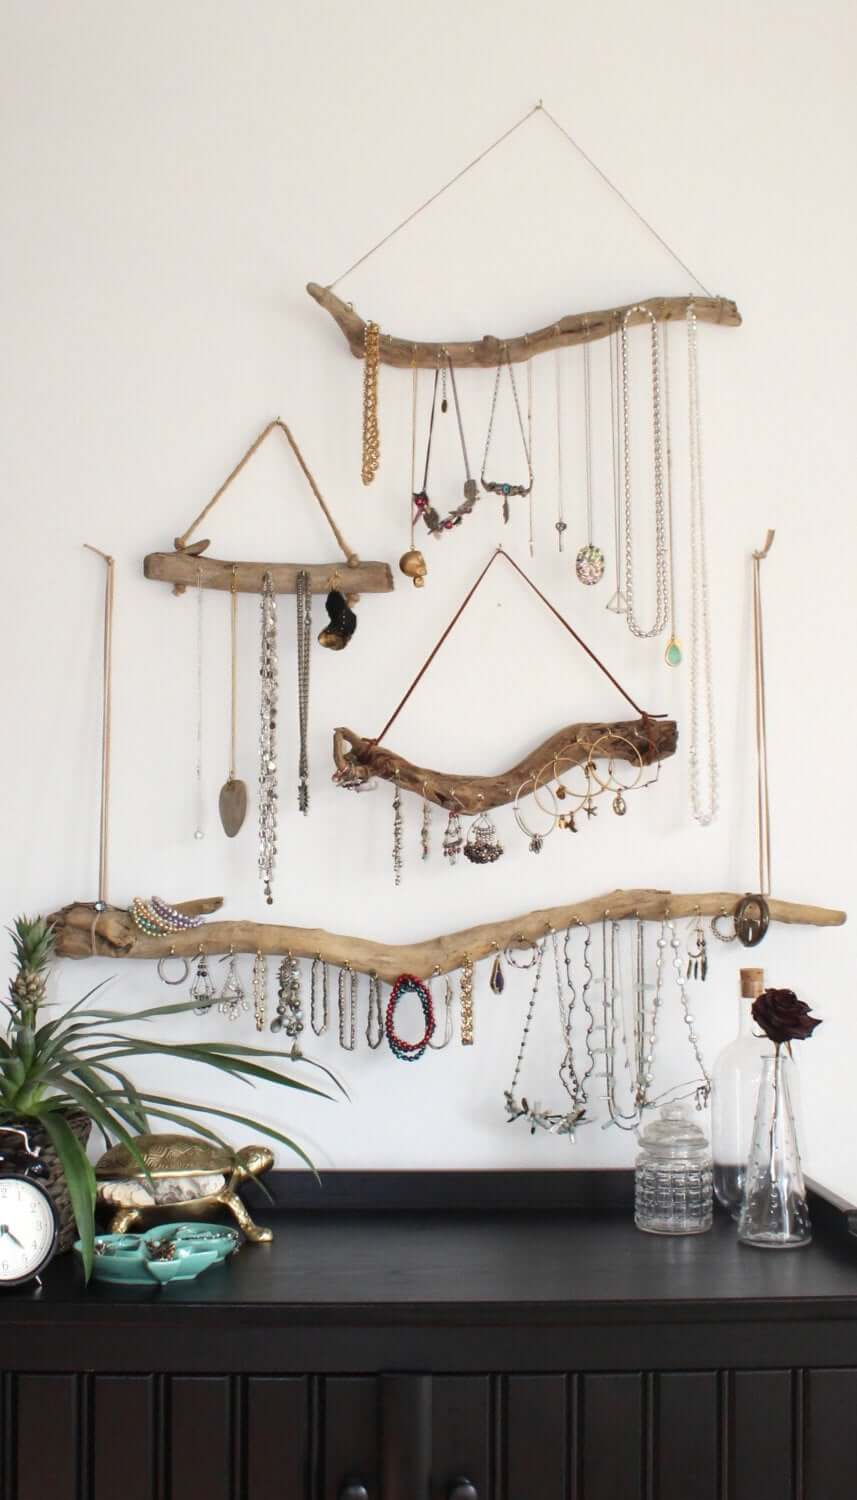 A Stylish Way to Display Jewelry, Naturally